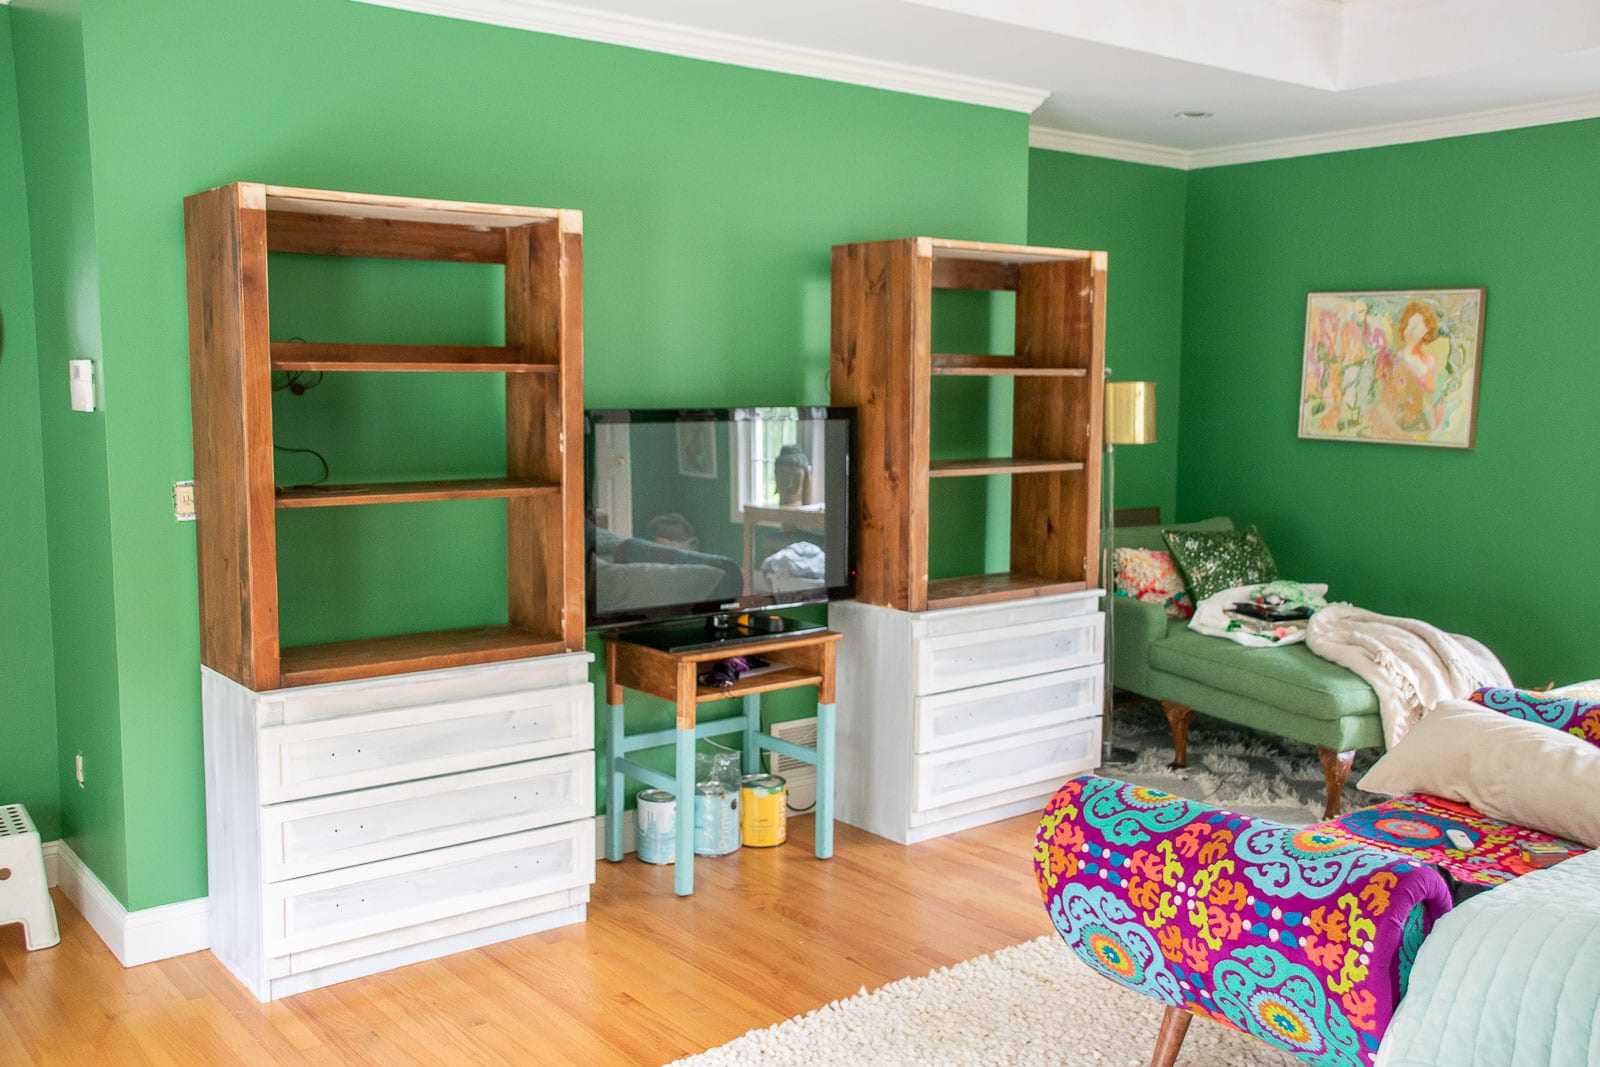 bookshelves in the space